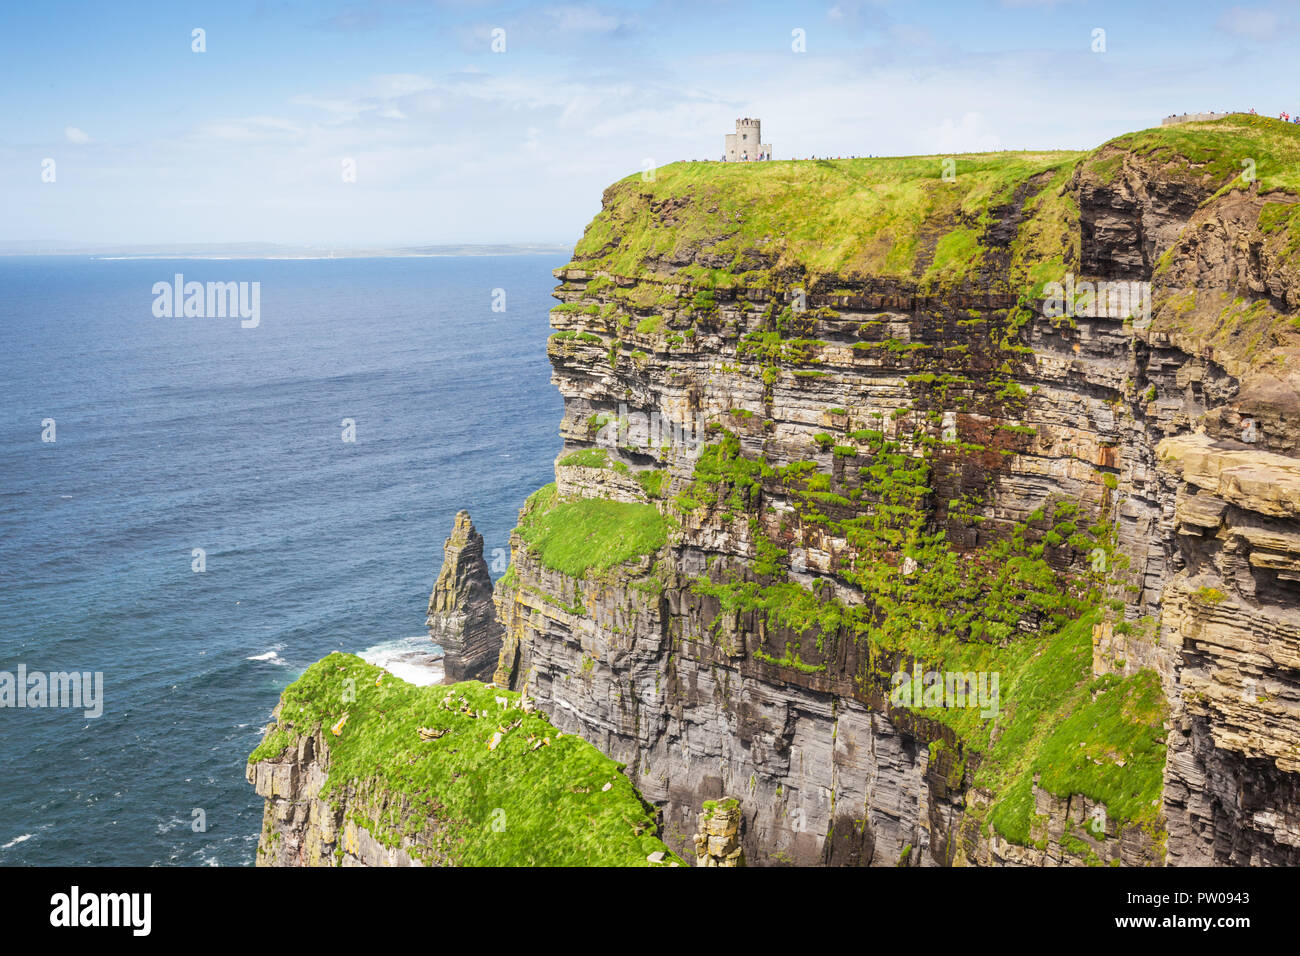 The 214-metre high Cliffs of Moher in County Clare are Ireland's most visited natural attraction. Stock Photo